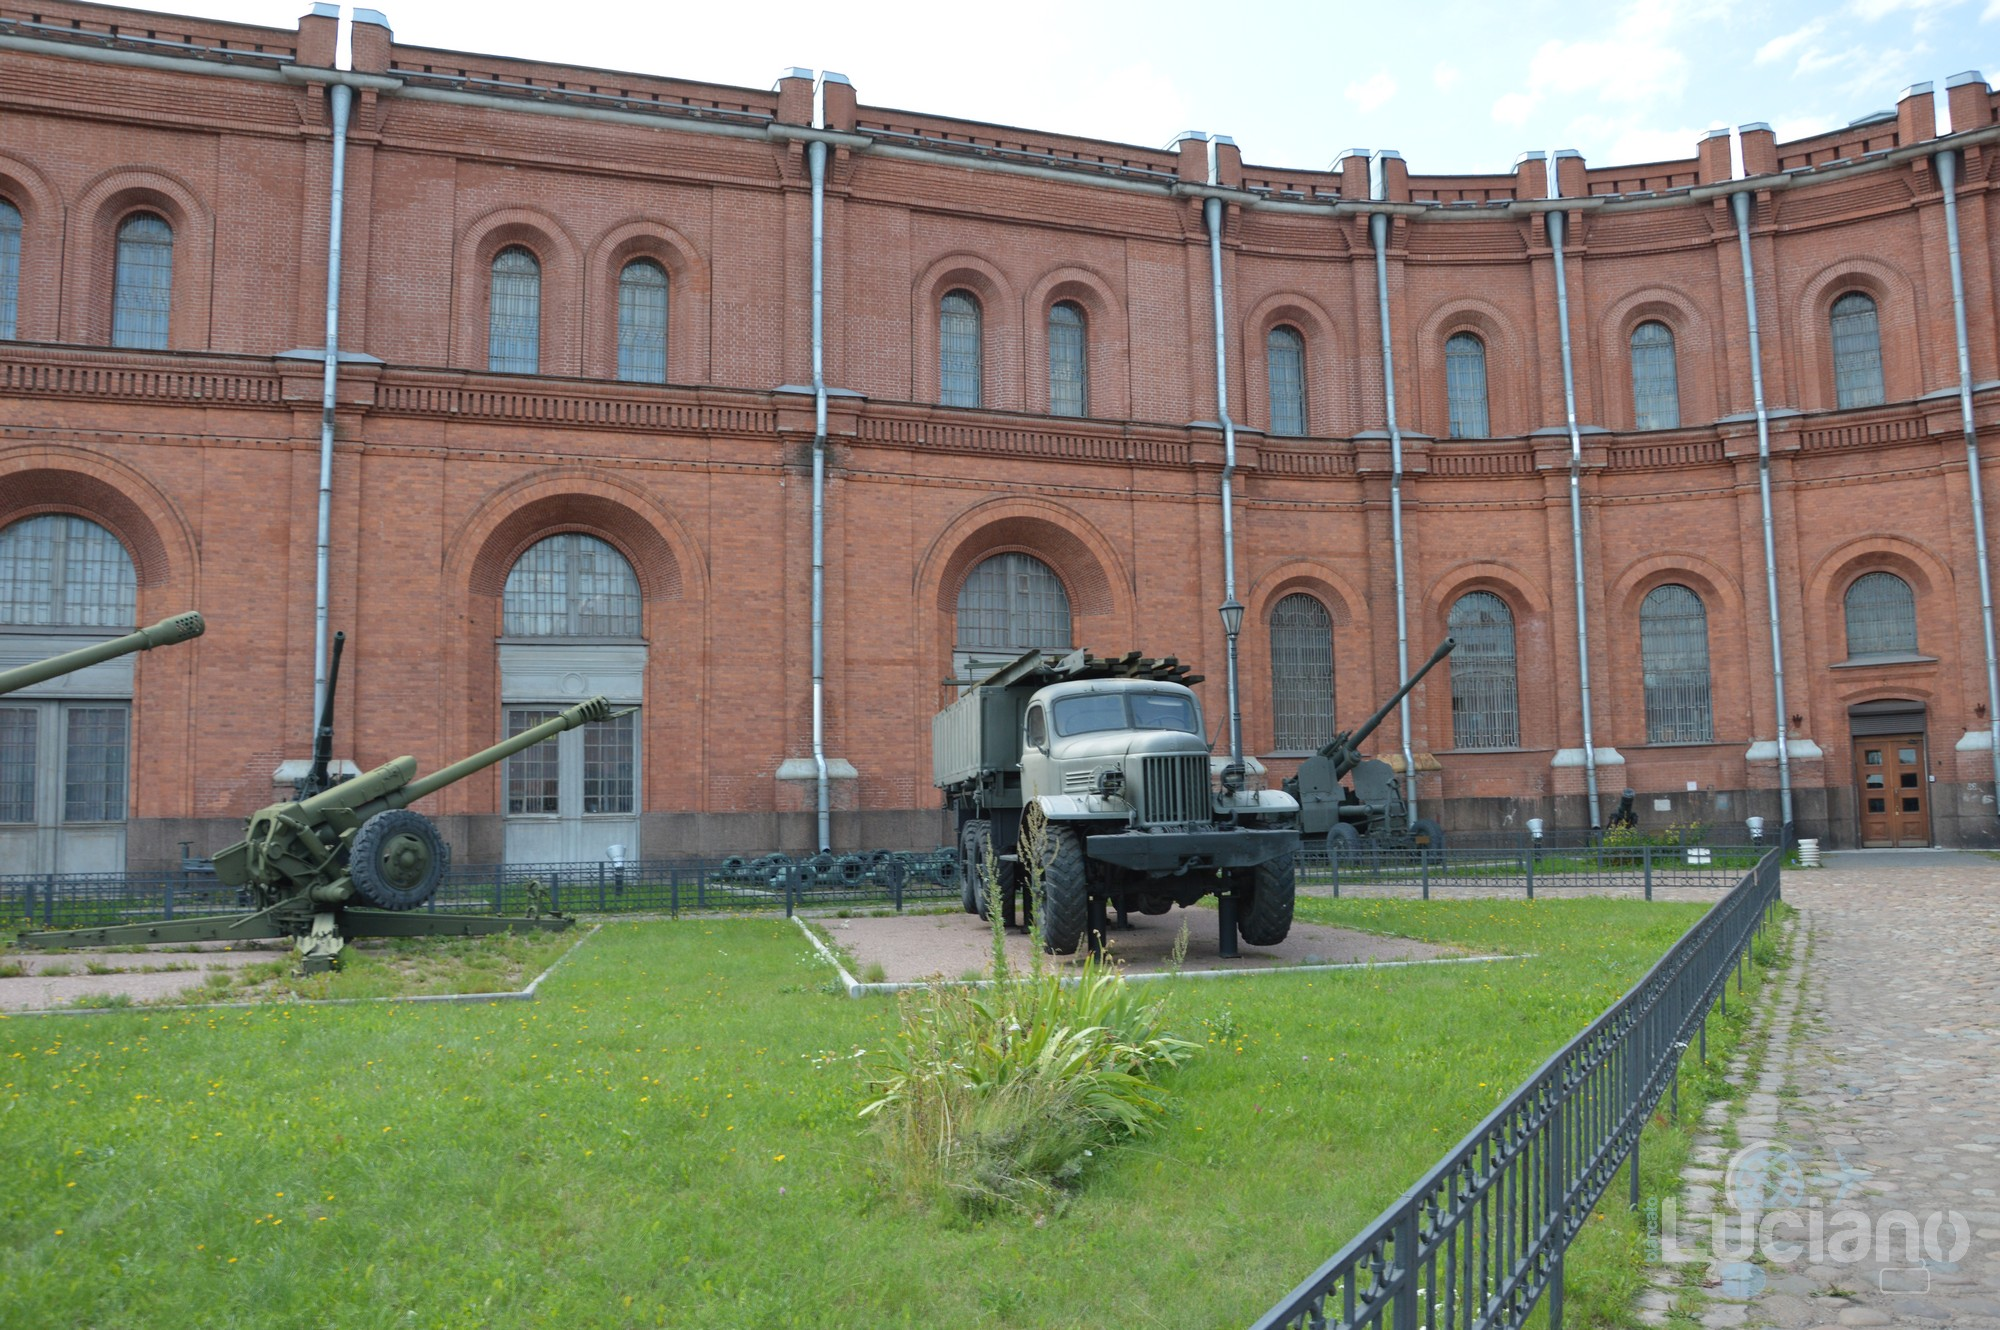 Military-Historical-Museum-of-Artillery-Engineer-and-Signal-Corps-St-Petersburg-Russia-Luciano-Blancato- (85)